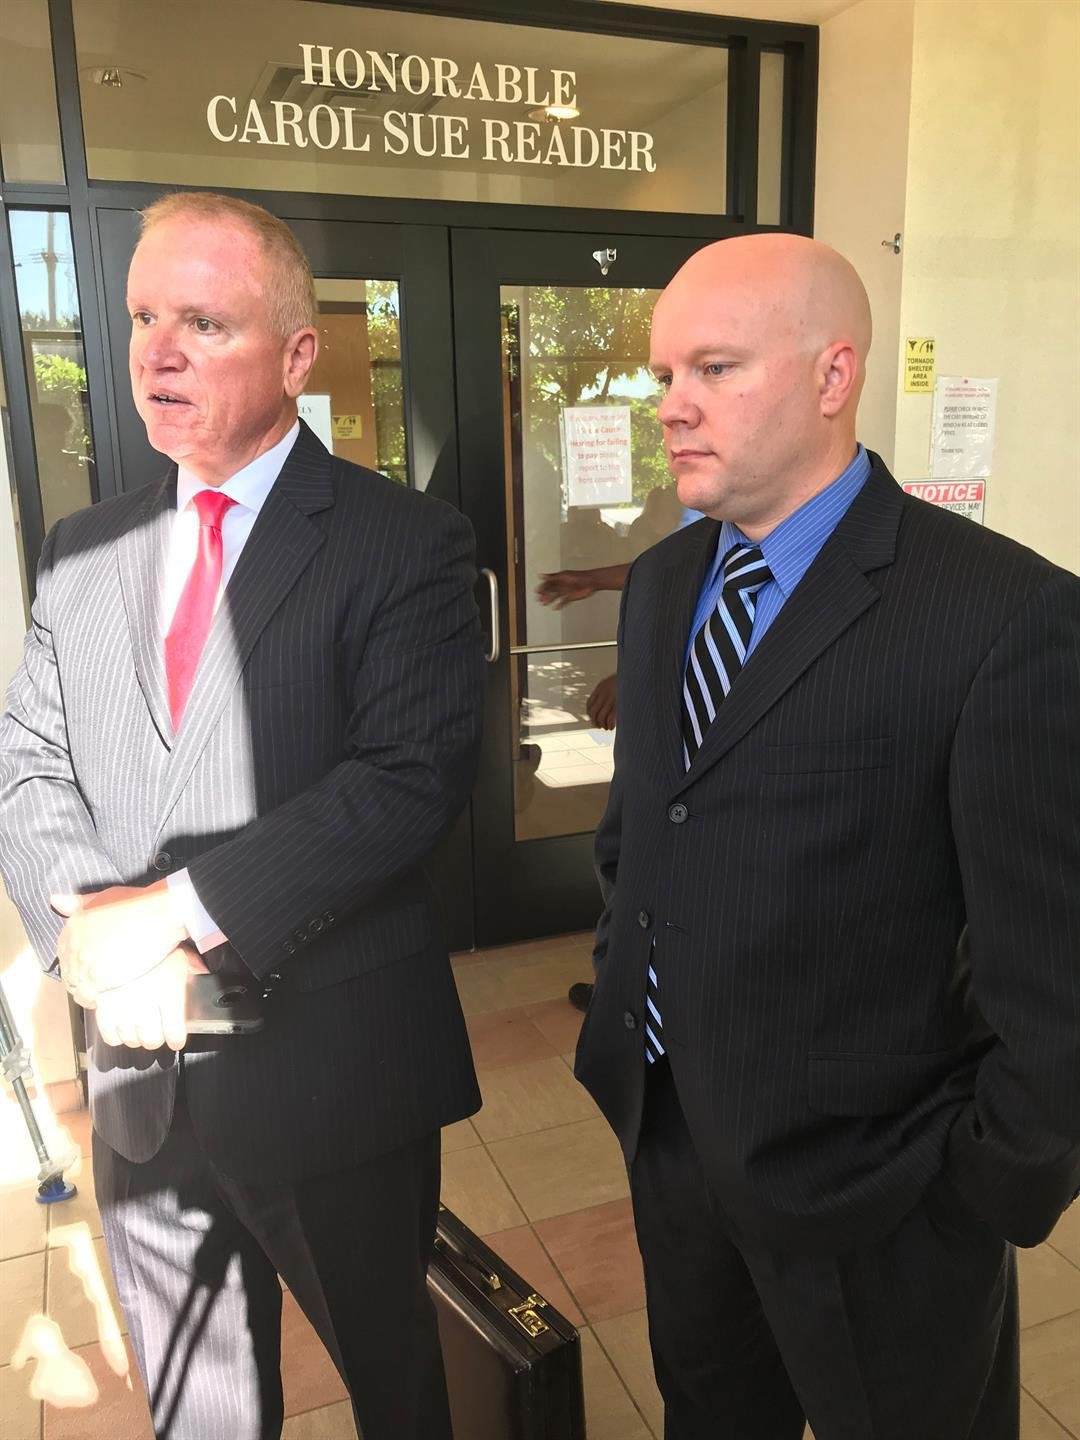 Mark Boudreau pictured on right (Source: WNEM)